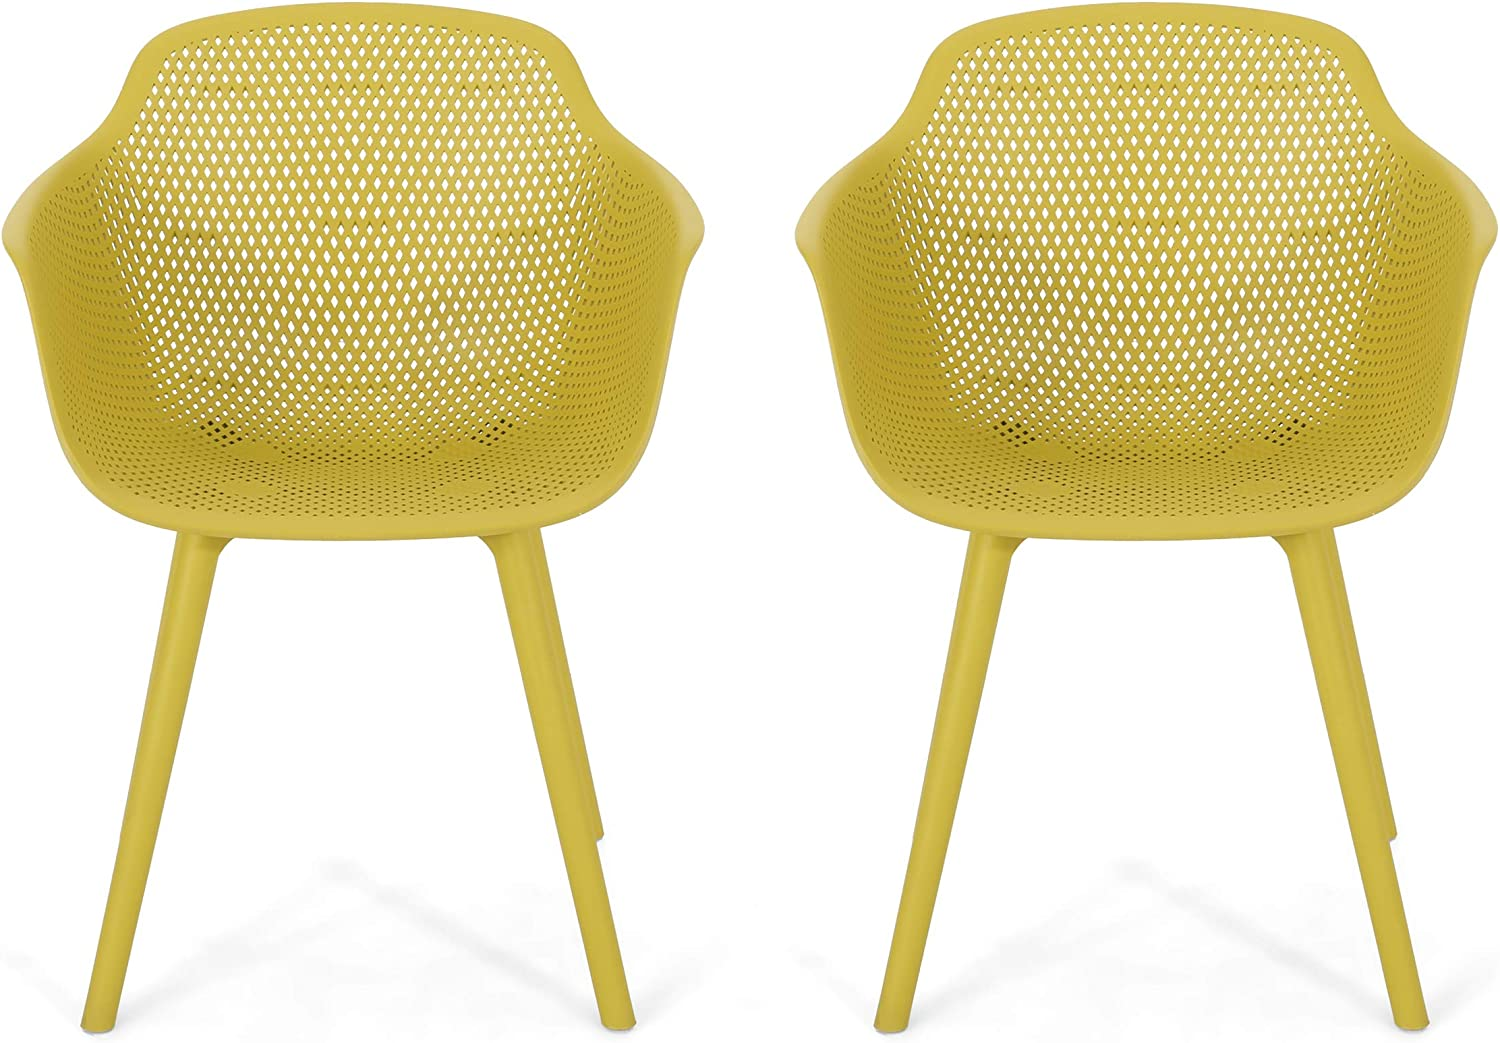 Christopher Knight Home 312465 Davina Outdoor Dining Chair (Set of 2), Yellow